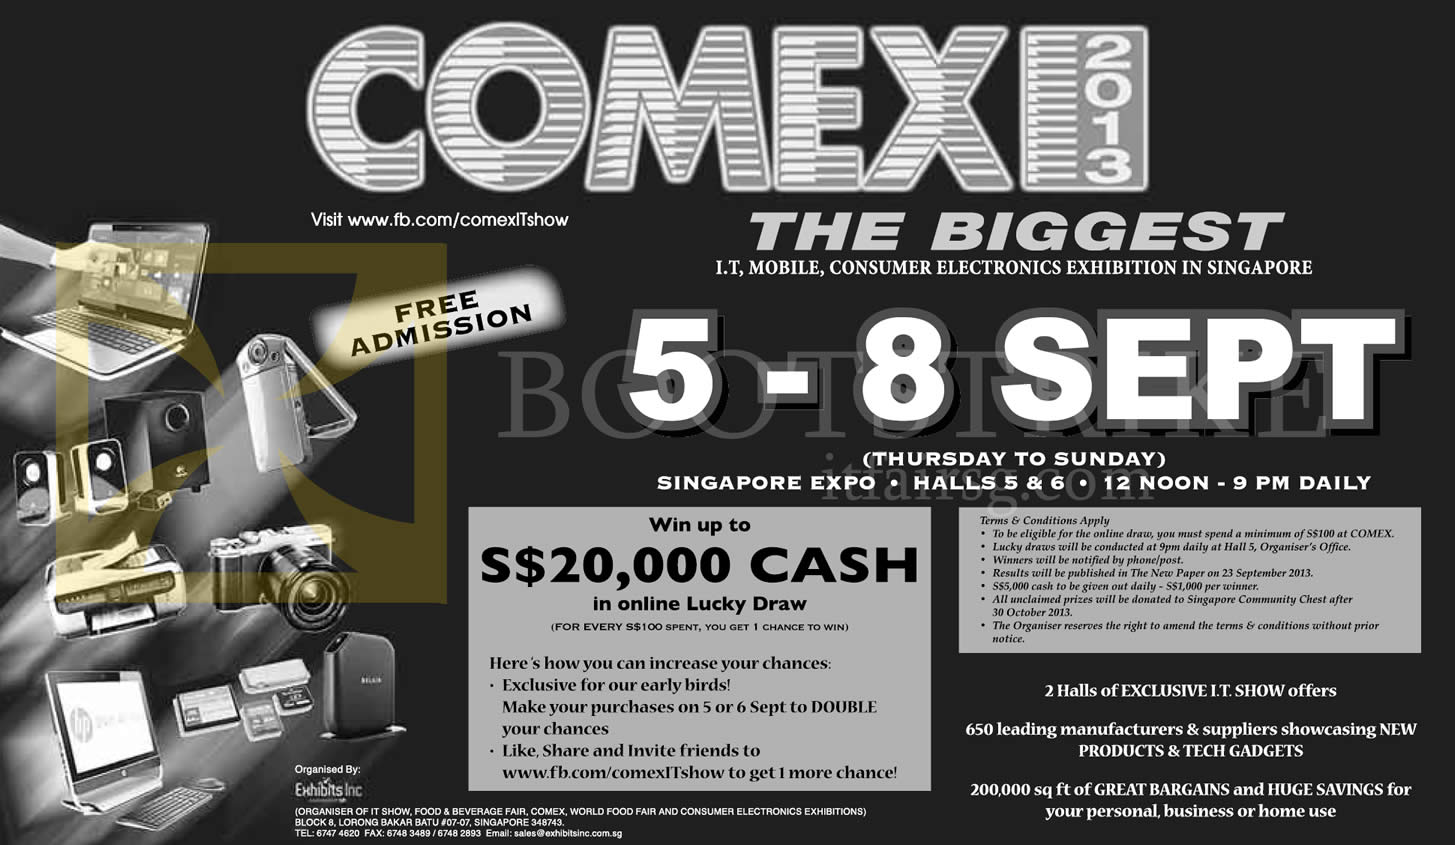 COMEX 2013 price list image brochure of Lucky Draw Prizes, Eligibility, Terms, Conditions